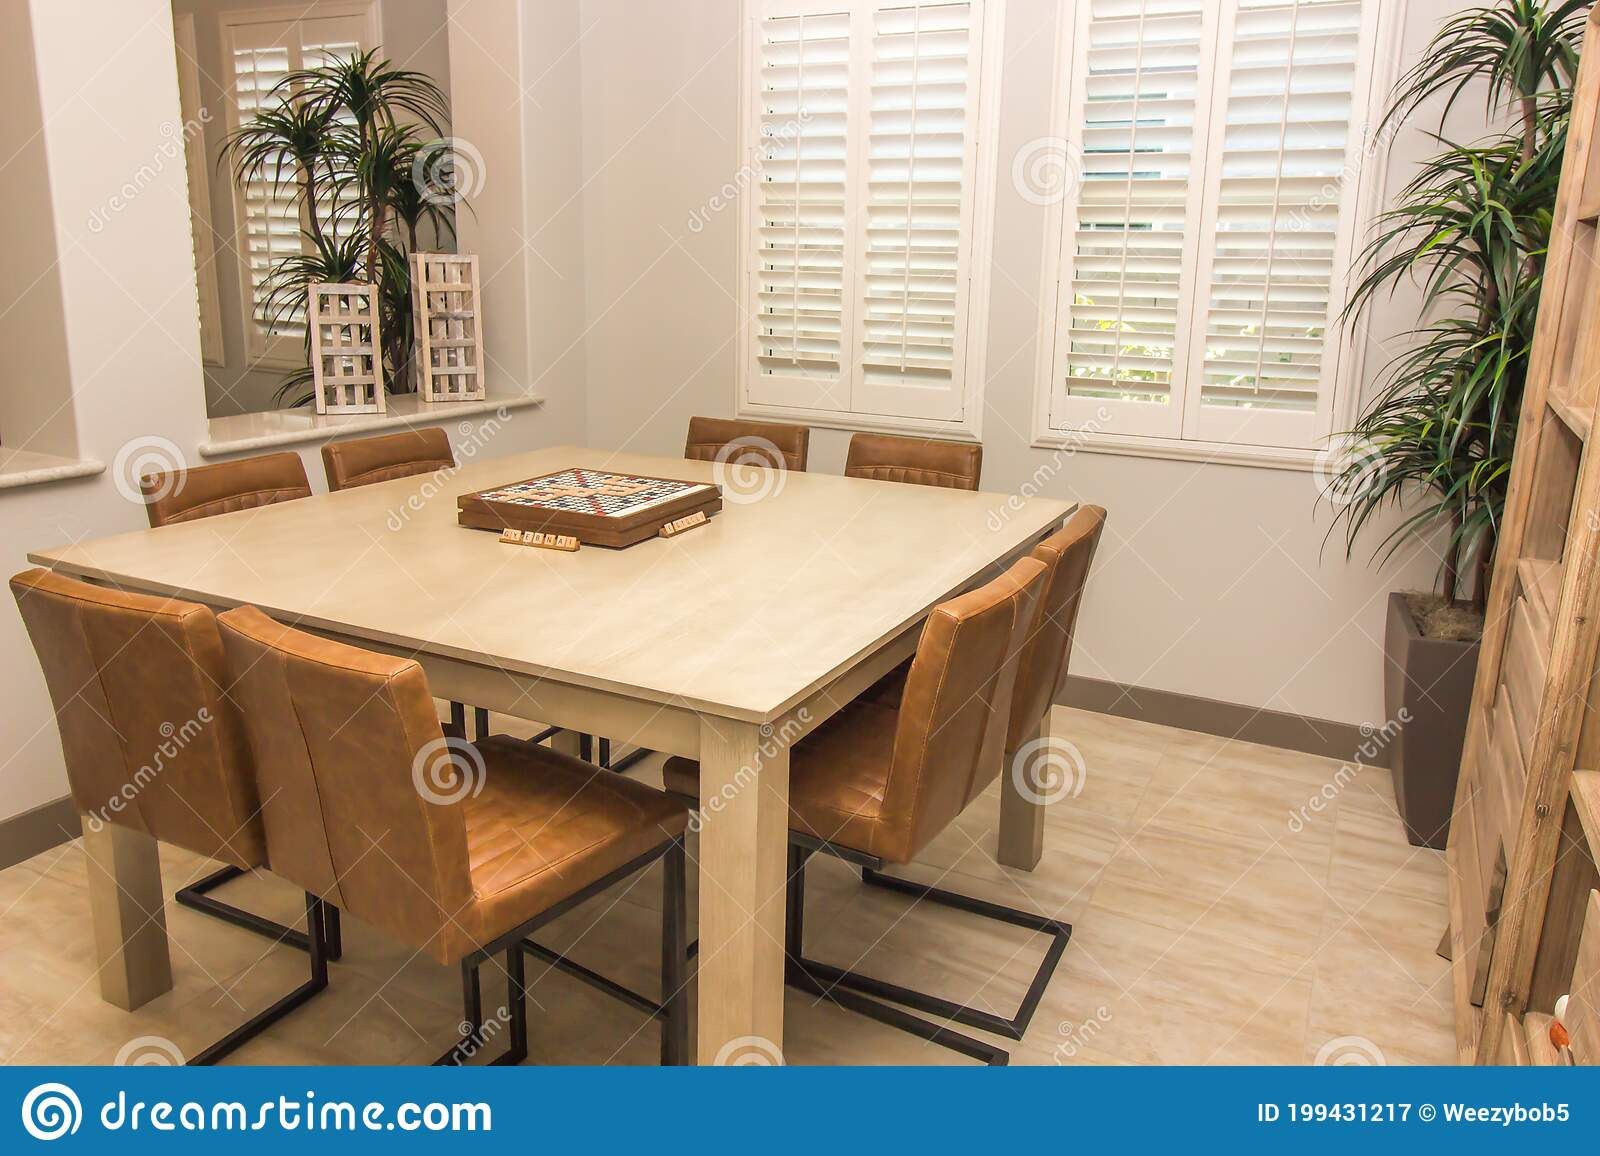 Modern Game Table With Eight Chairs Stock Image Image Of Inside Chairs 199431217